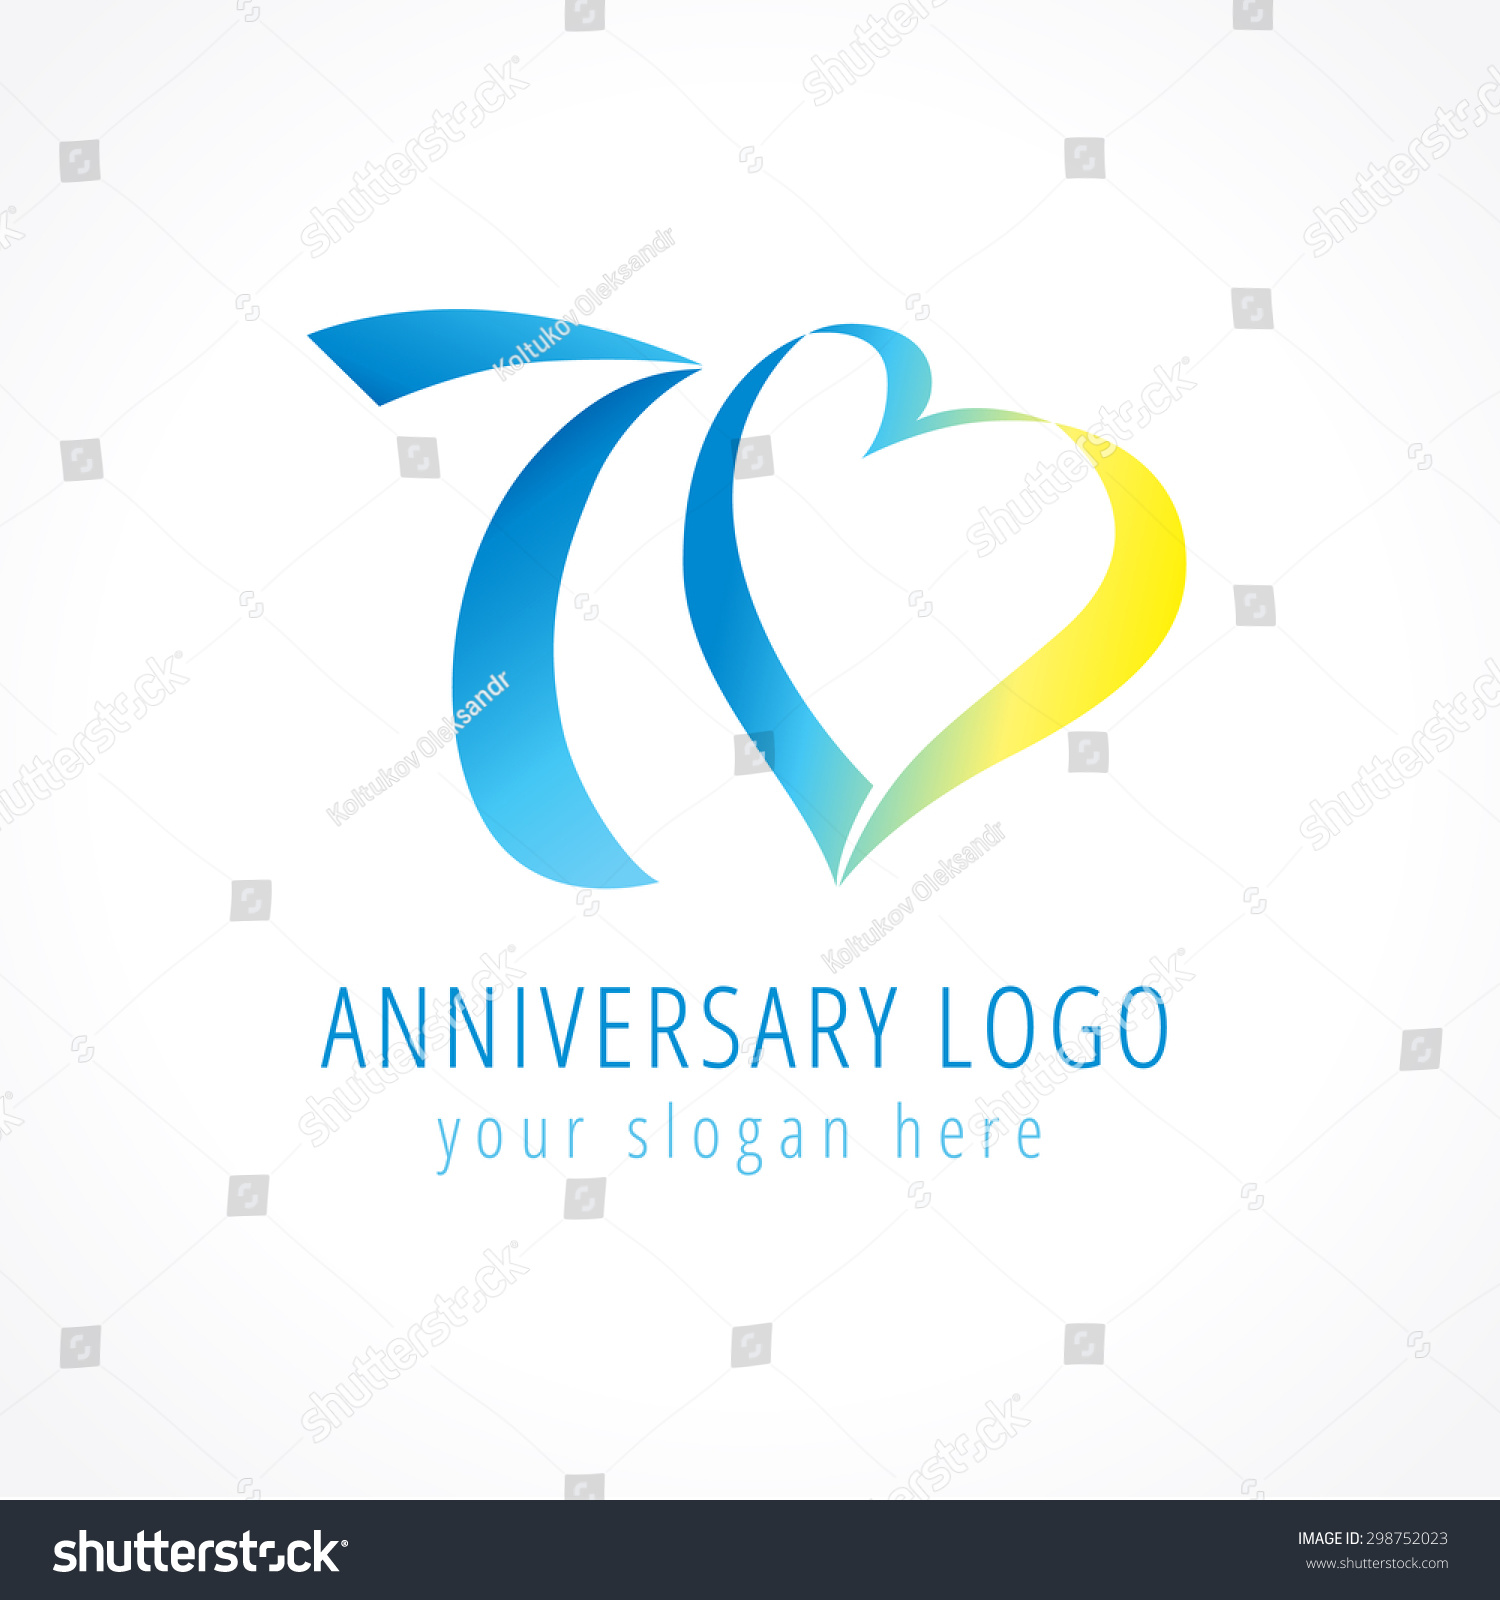 Anniversary 70 Years Old Hearts Celebrating Stock Vector Royalty